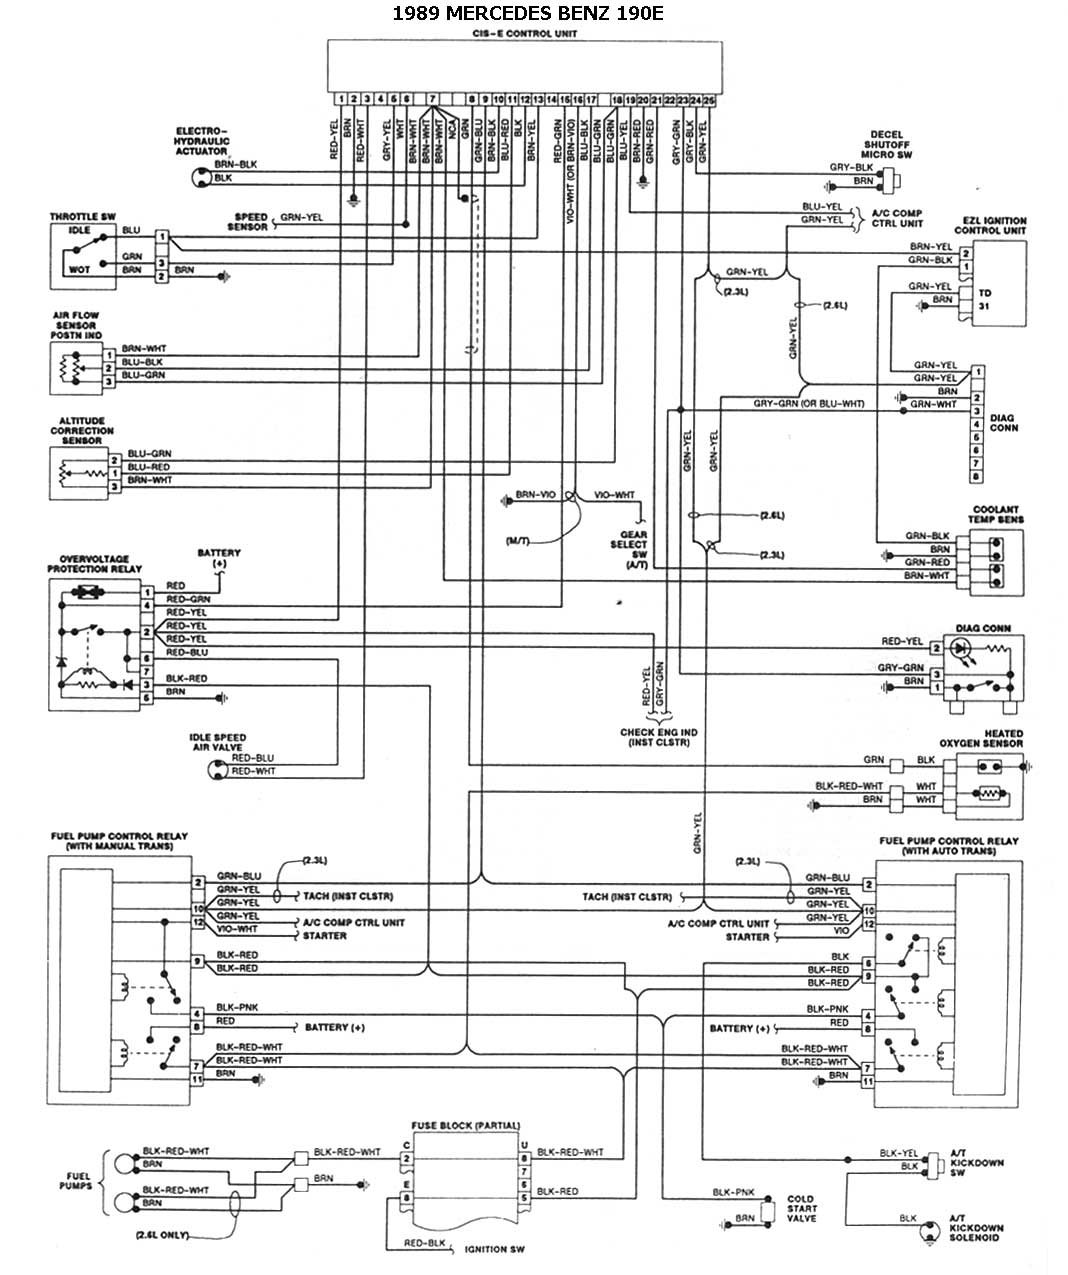 Vt 600 Wiring Diagram Auto Electrical 2003 Mitsubishi Lancer Car Radio Stereo Audio Mercedes C230